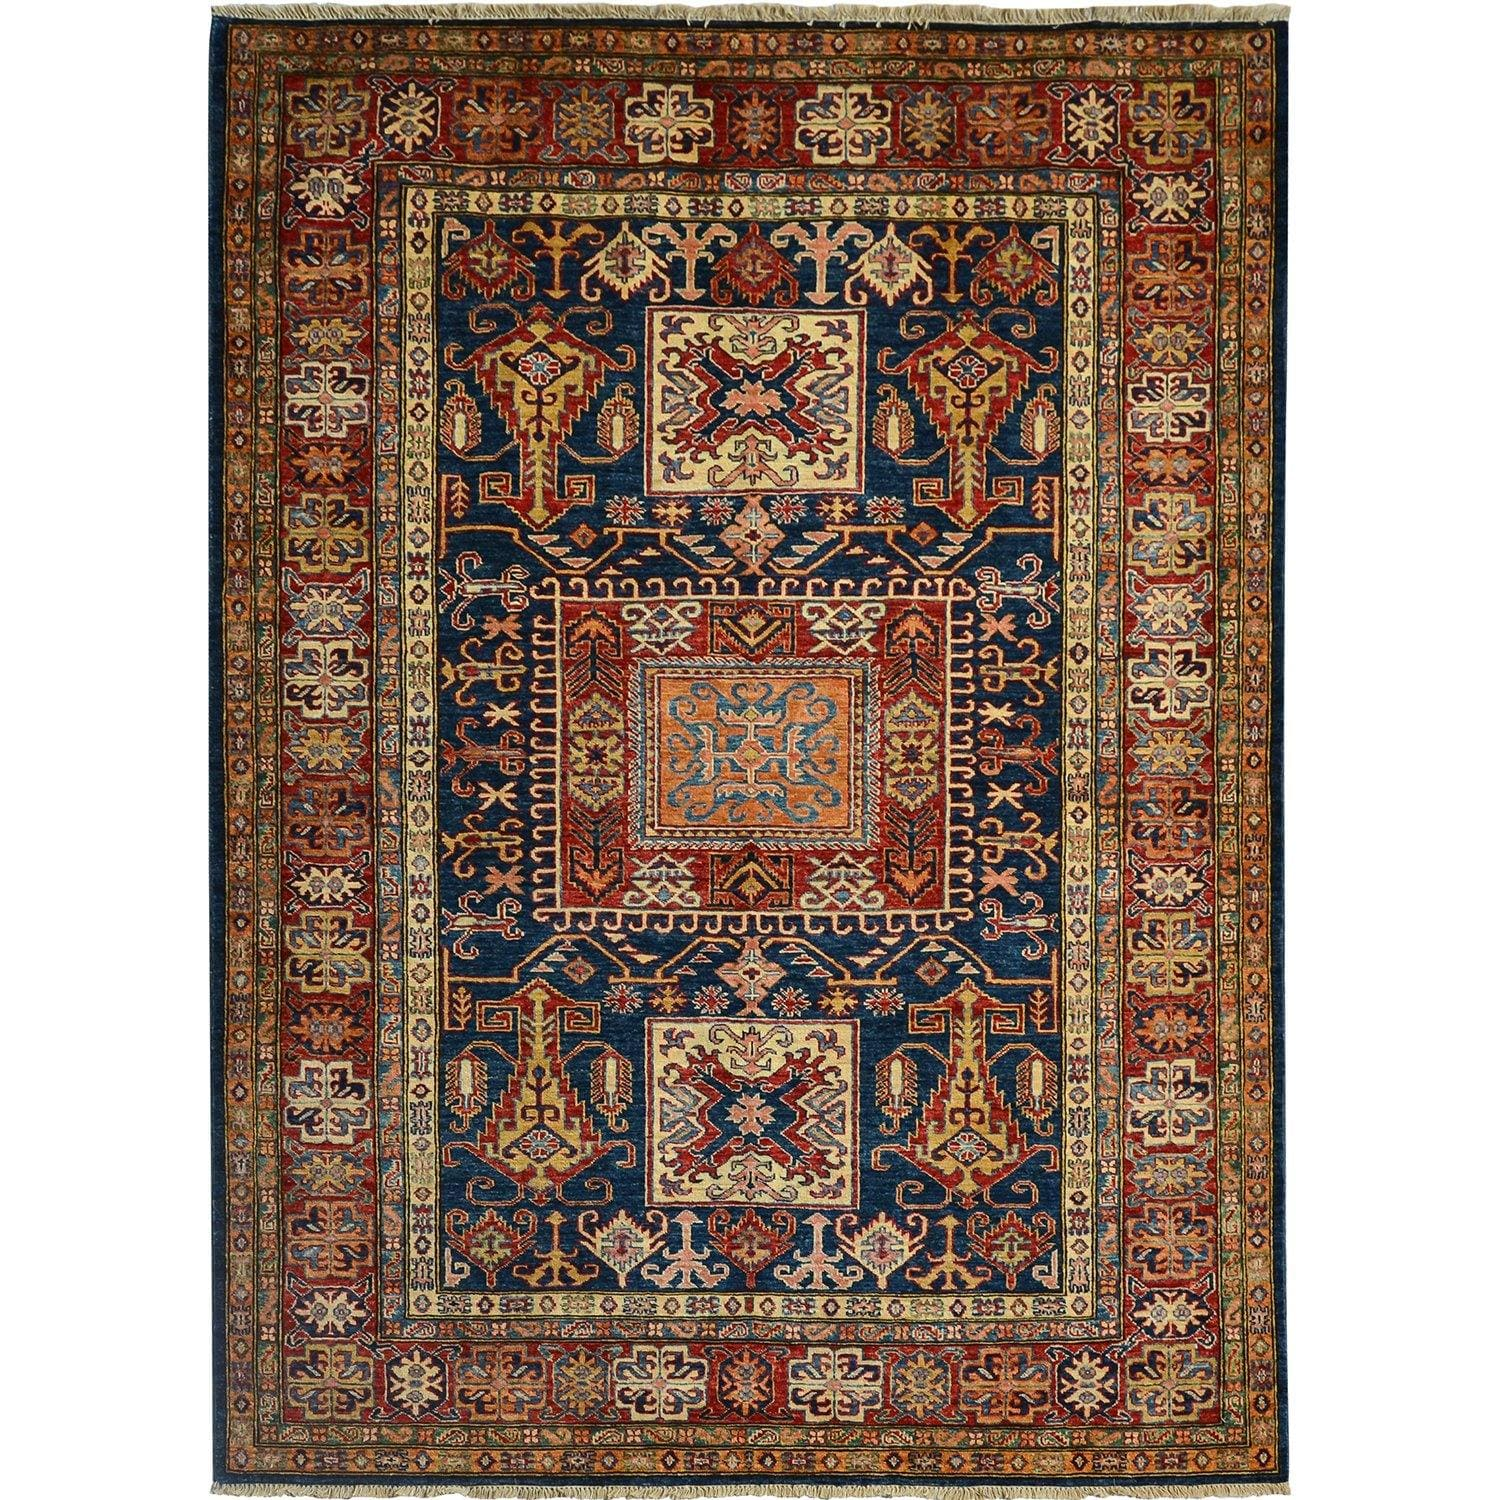 Super Fine Hand-knotted Tribal Super Kazak Wool Rug 177cm x 236cm Persian-Rug | House-of-Haghi | NewMarket | Auckland | NZ | Handmade Persian Rugs | Hand Knotted Persian Rugs